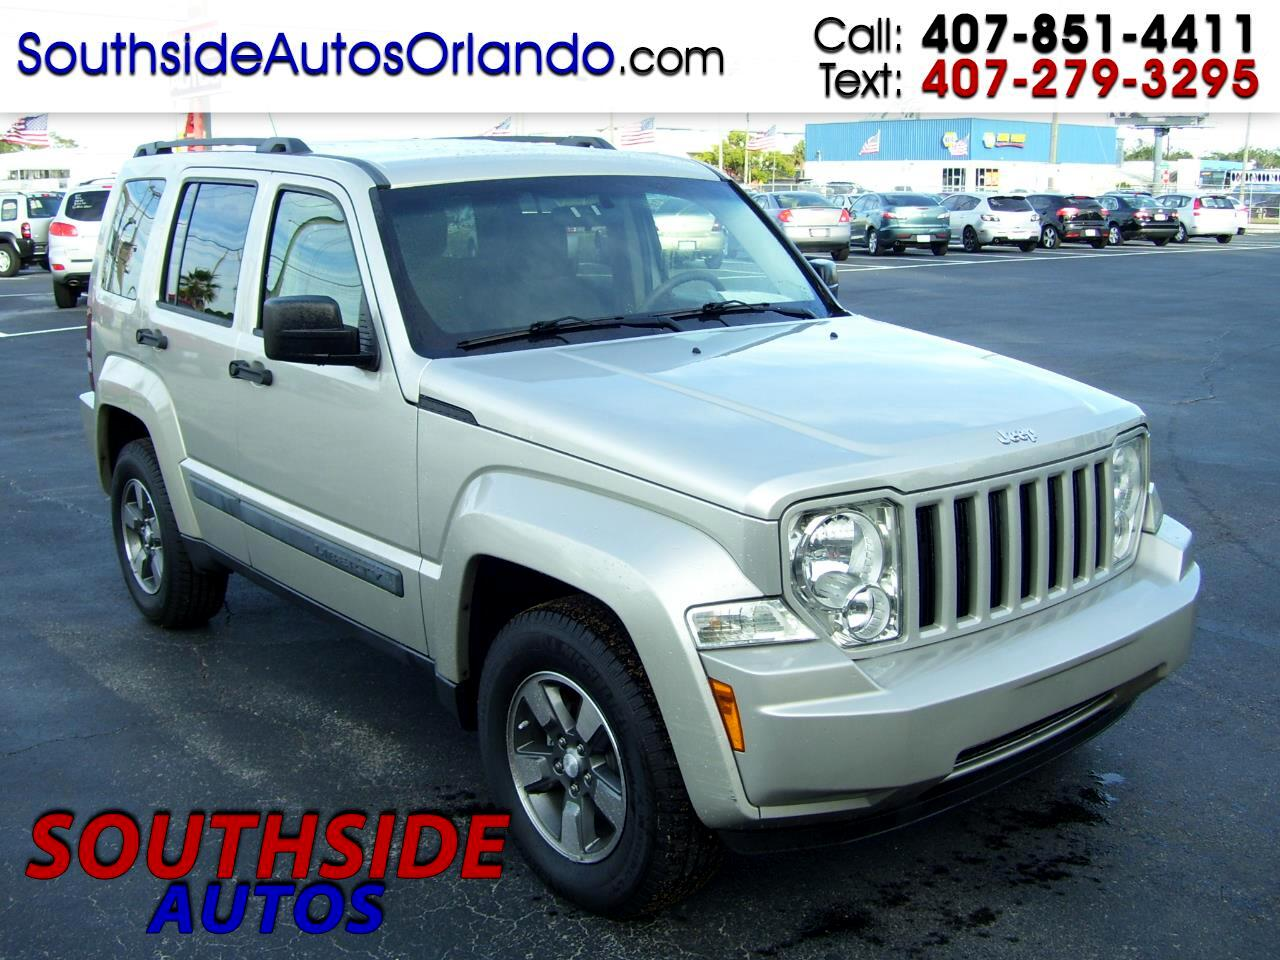 2008 Jeep Liberty RWD 4dr Sport